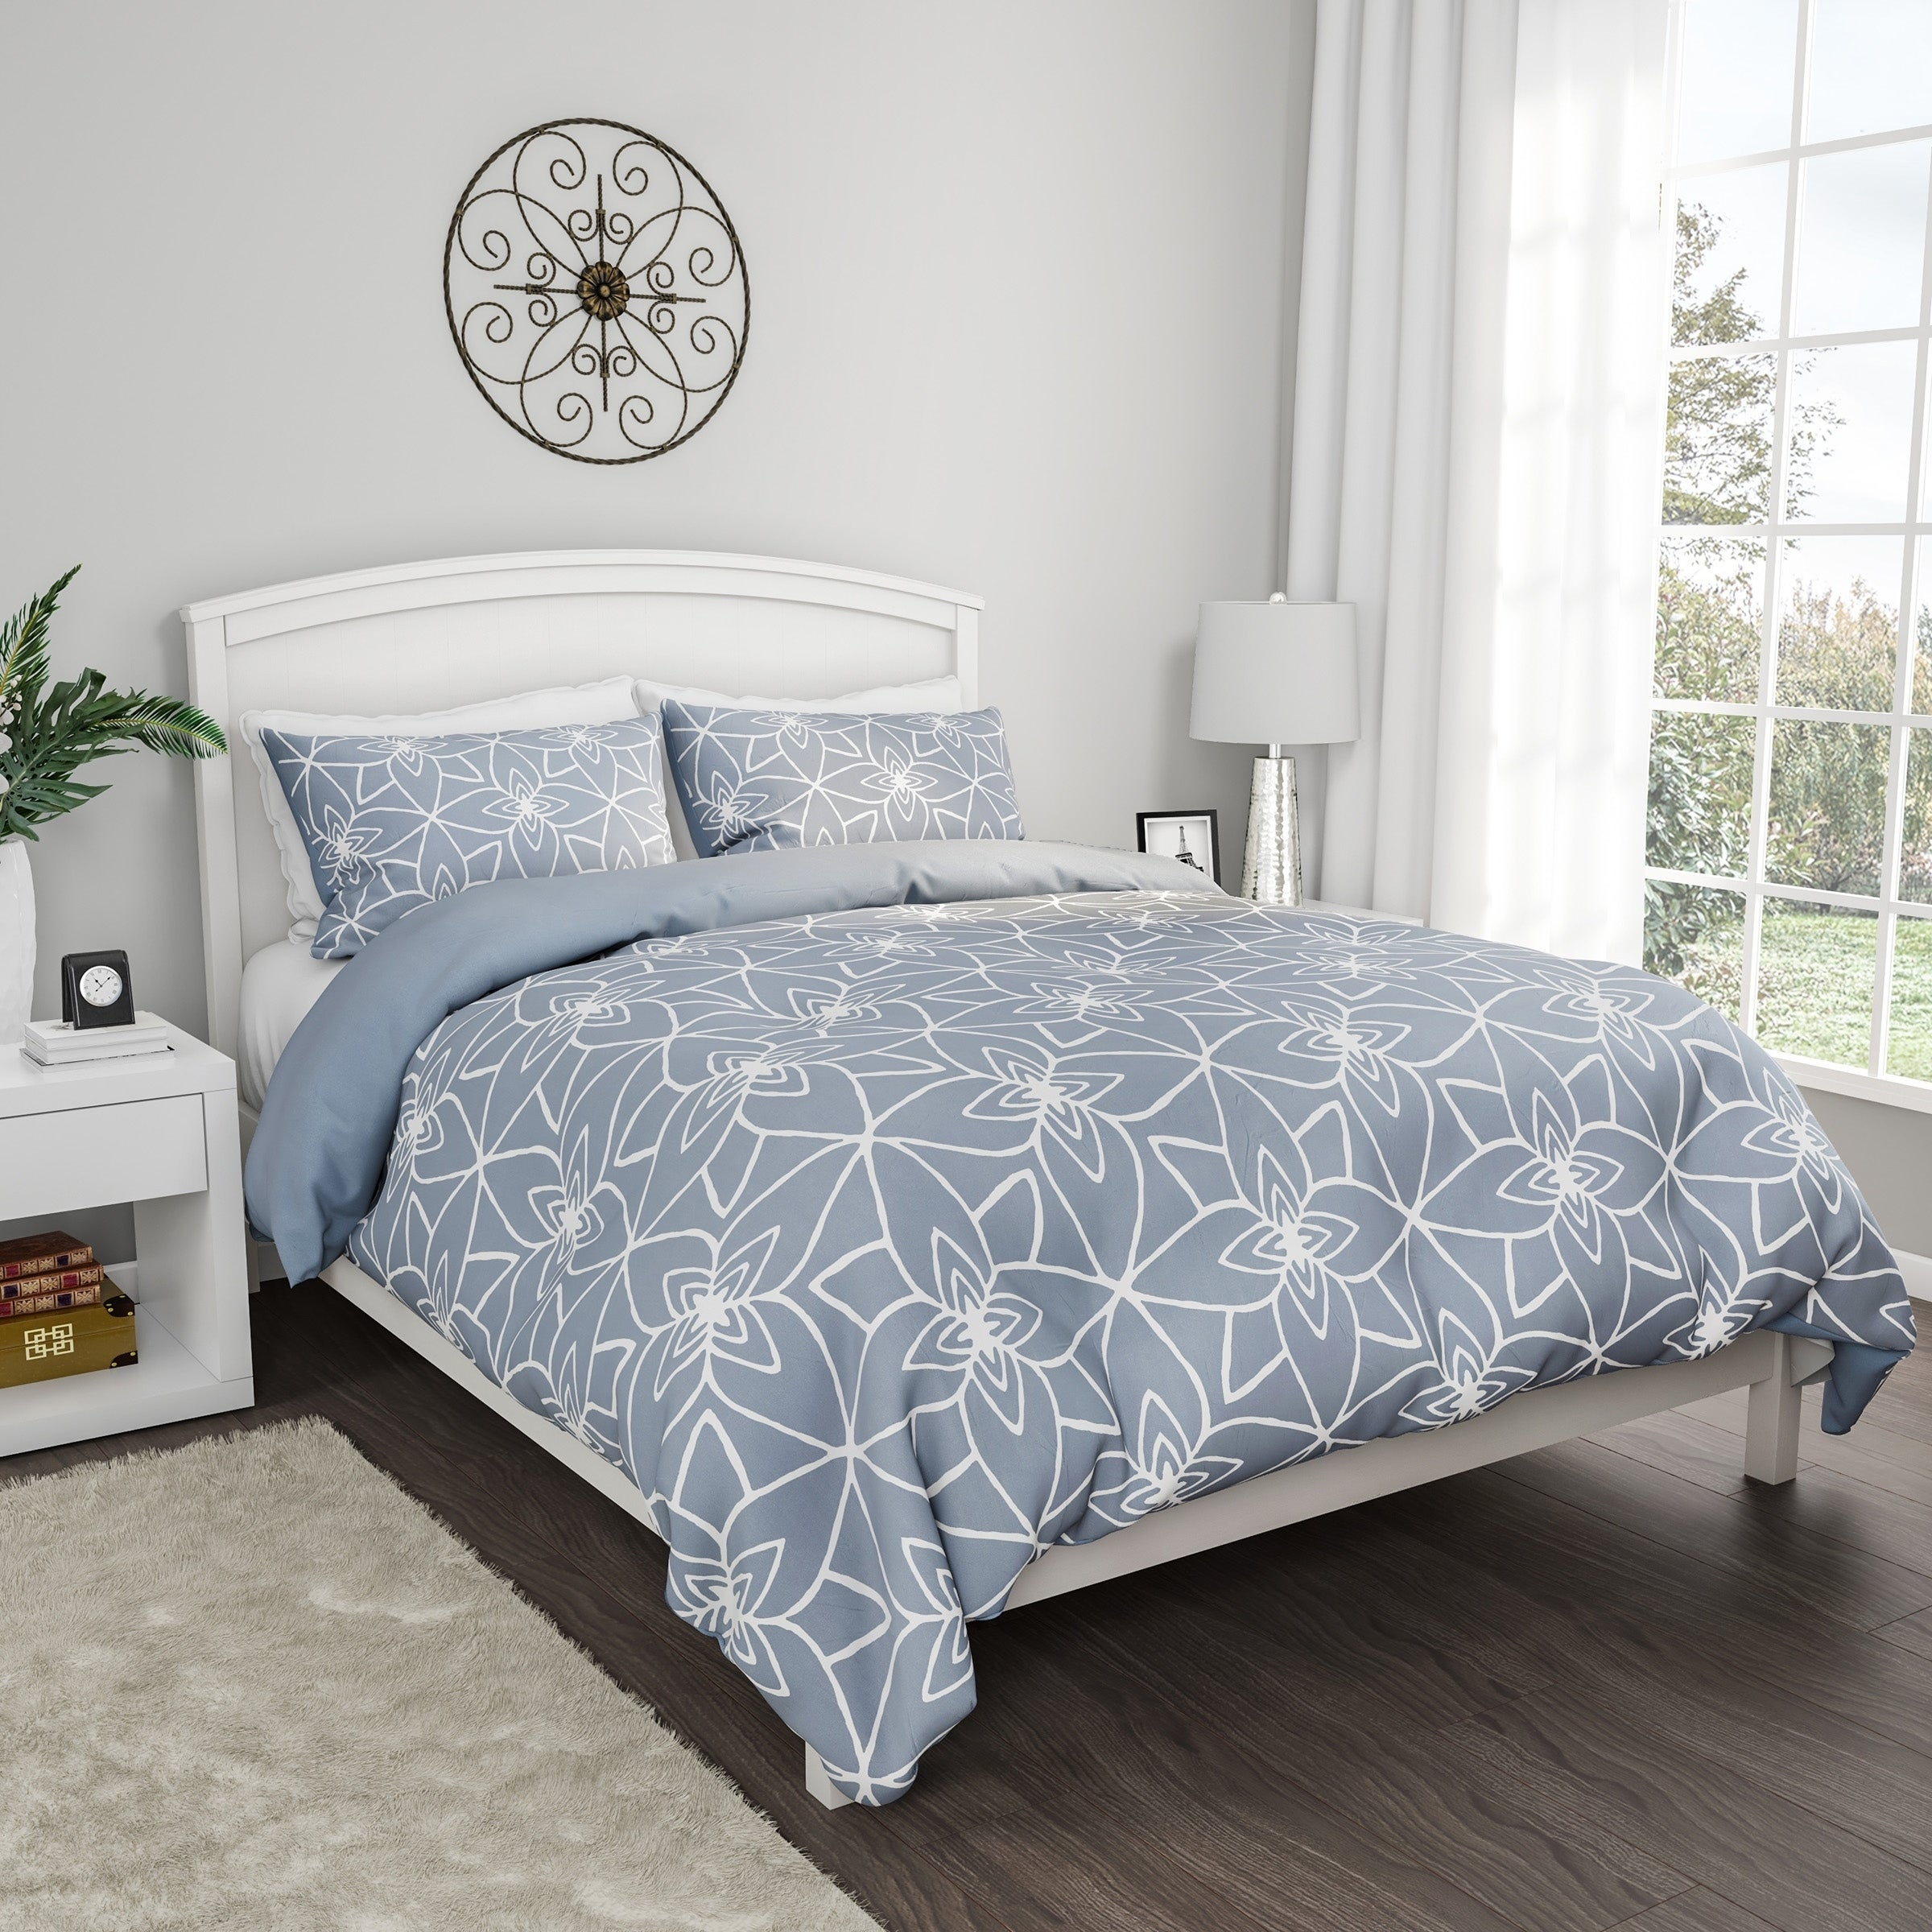 JQinHome Full 3-Piece Galaxies Dark Blue Comforter Sets Includes 1 Comforter All-Season Down Alternative Quilted Duvet Reversible Design 2 Pillow Shams 3D Outer Space Themed